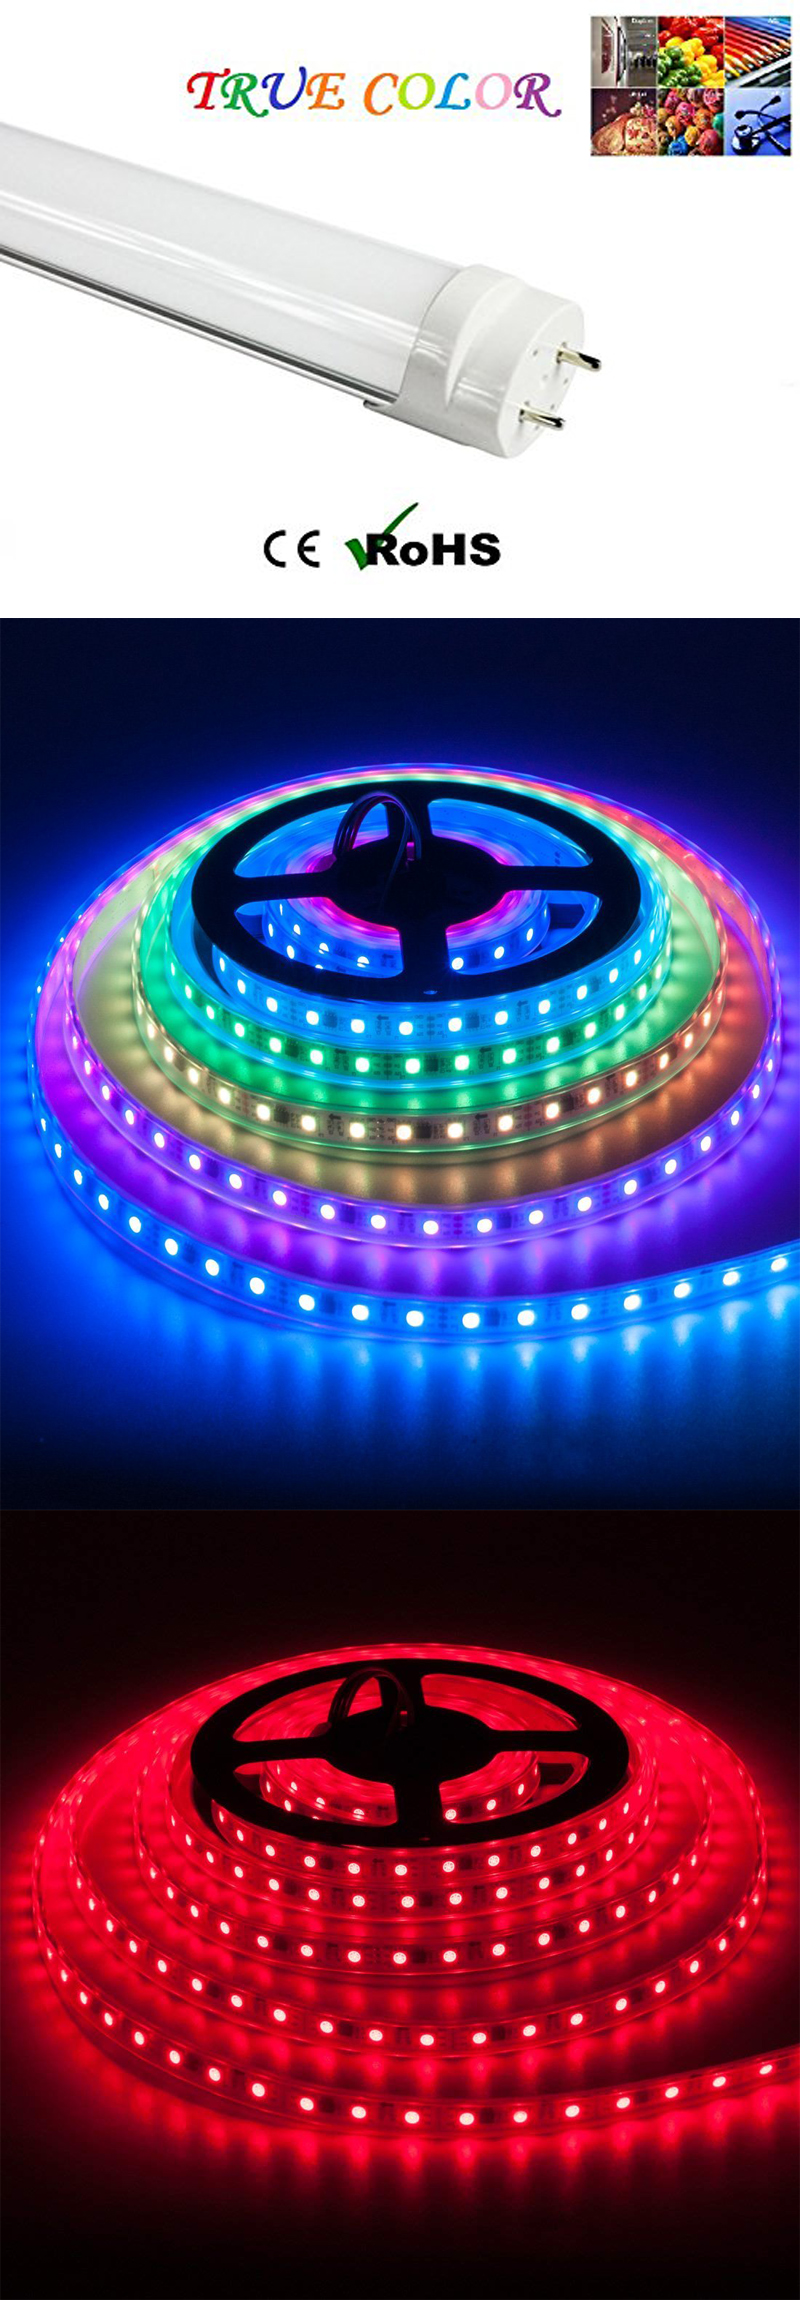 color led tube